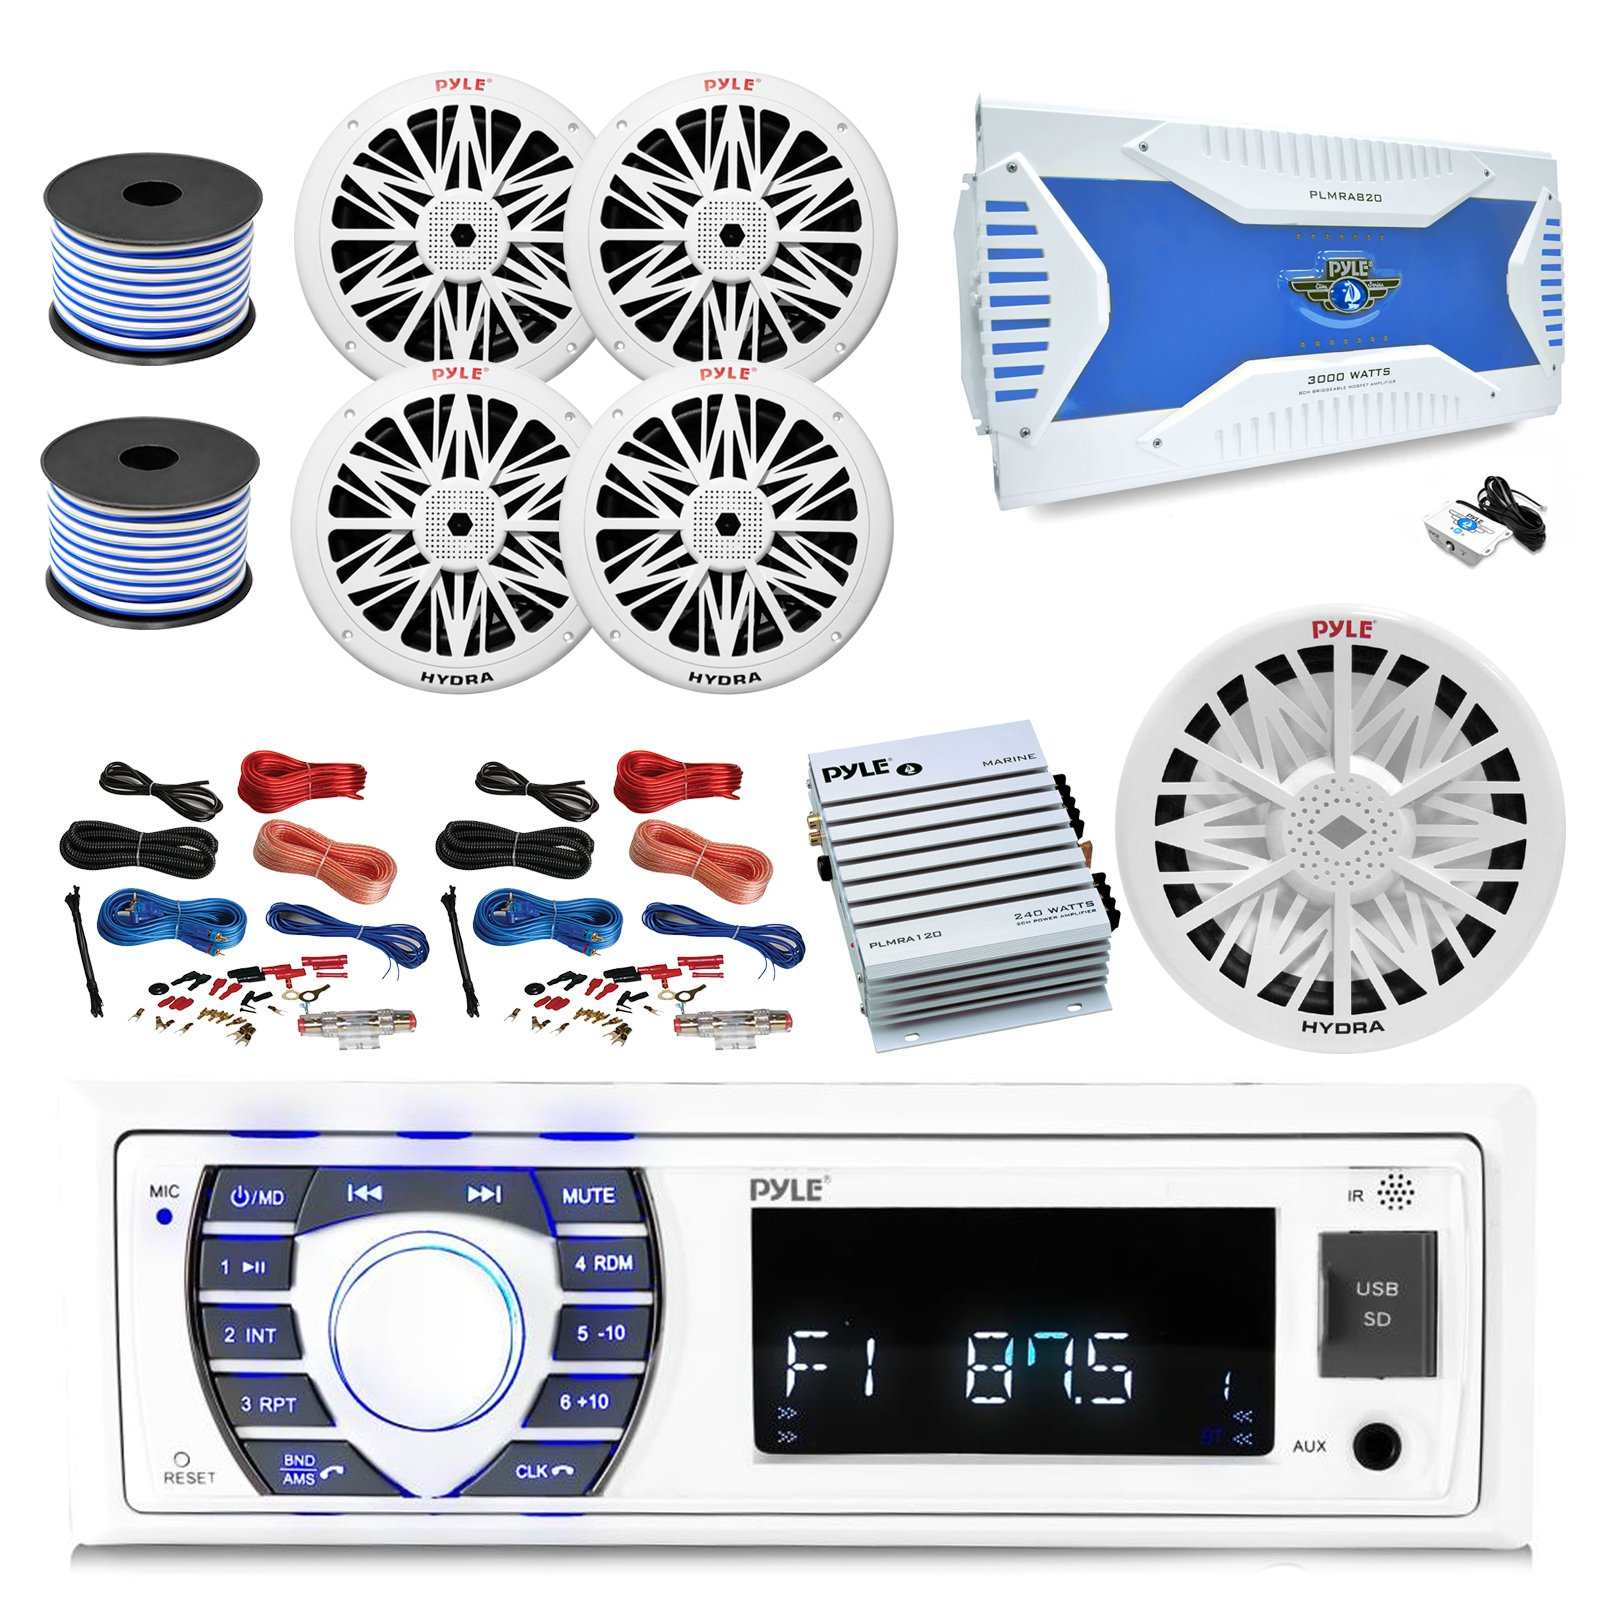 36-42' Boat: Pyle Bluetooth Marine Stereo Receiver, 8x 8'' White Boat Speakers, Pyle 8-Channel Amp, 10'' Yacht Sub, Pyle 2-Channel Waterproof Amp, Amp Install Kit, 18 Gauge 50 FT Speaker Wire, Antenna